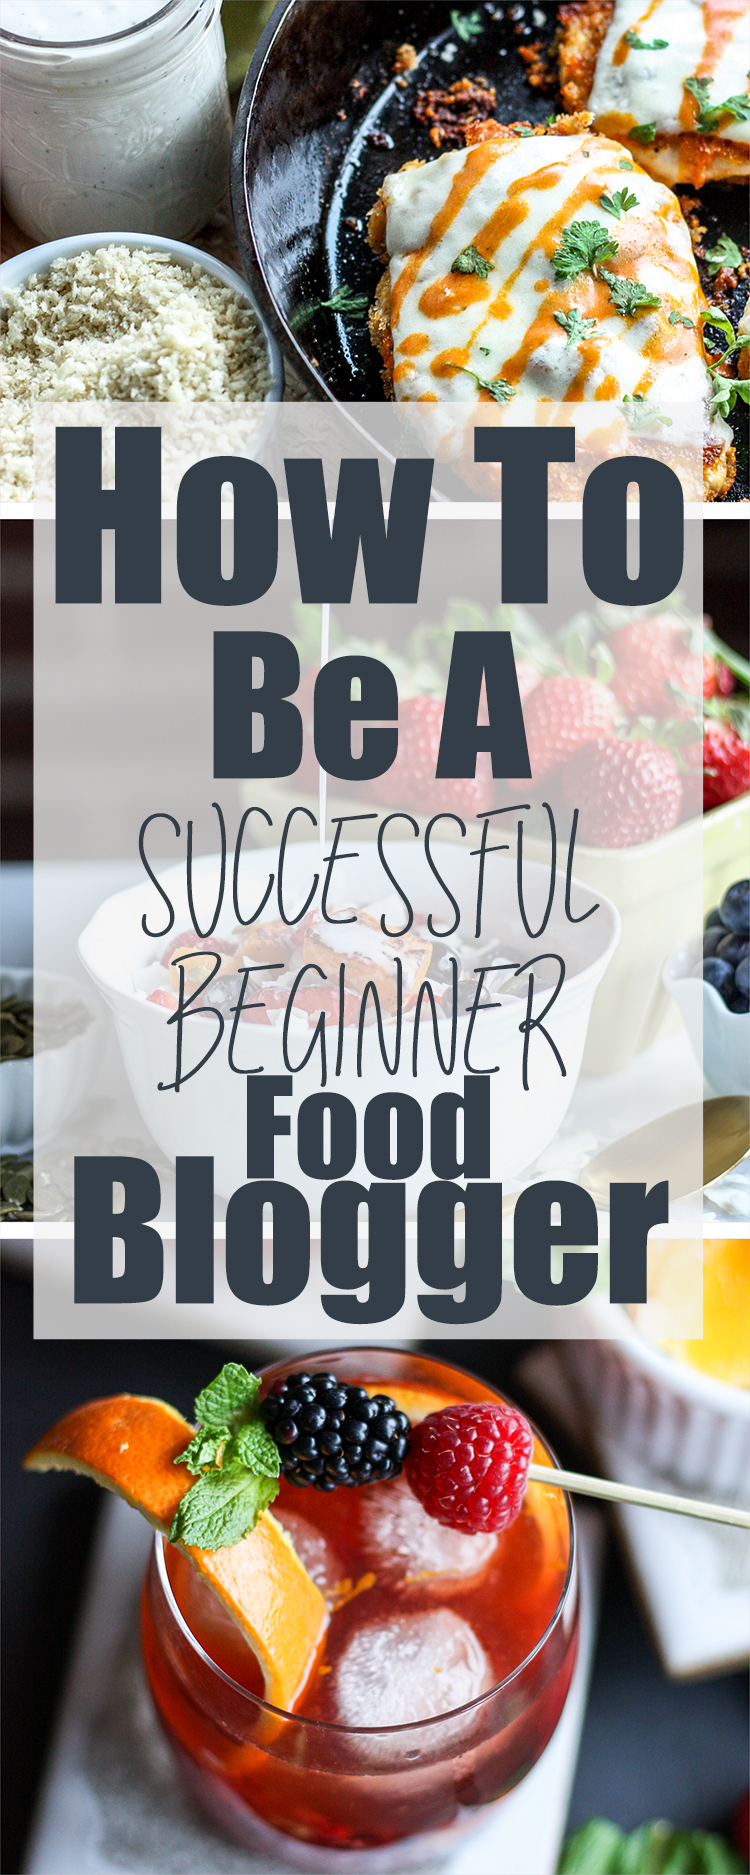 How To Be A Successful Beginner Blogger